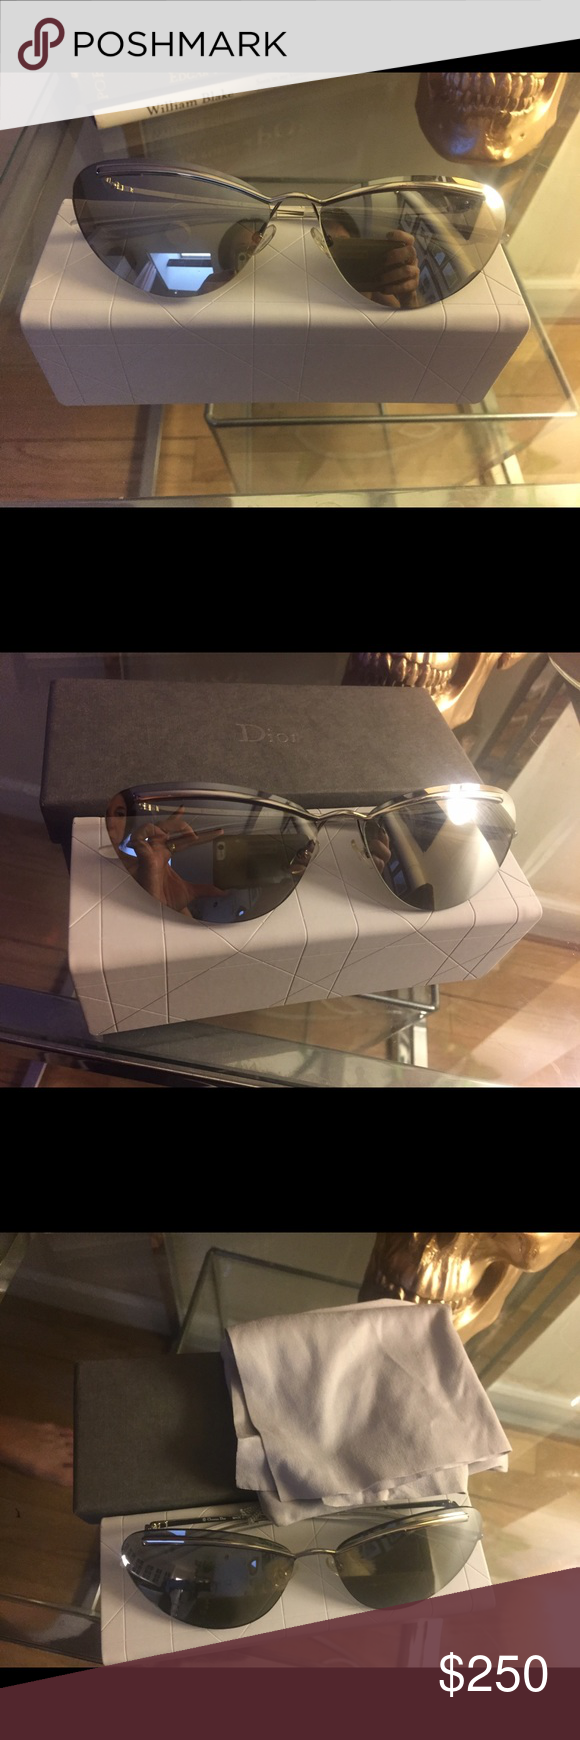 CHRISTIAN DIOR Sunglasses DIORETTE 010SS CHRISTIAN DIOR Designer Cat Eye Sunglasses DIORETTE 010SS Silver Grey Mirrored -new unused with original packaging. Lens width          62 MM, Bridge size 14MM, Temple arms 135MM Christian Dior Accessories Sunglasses